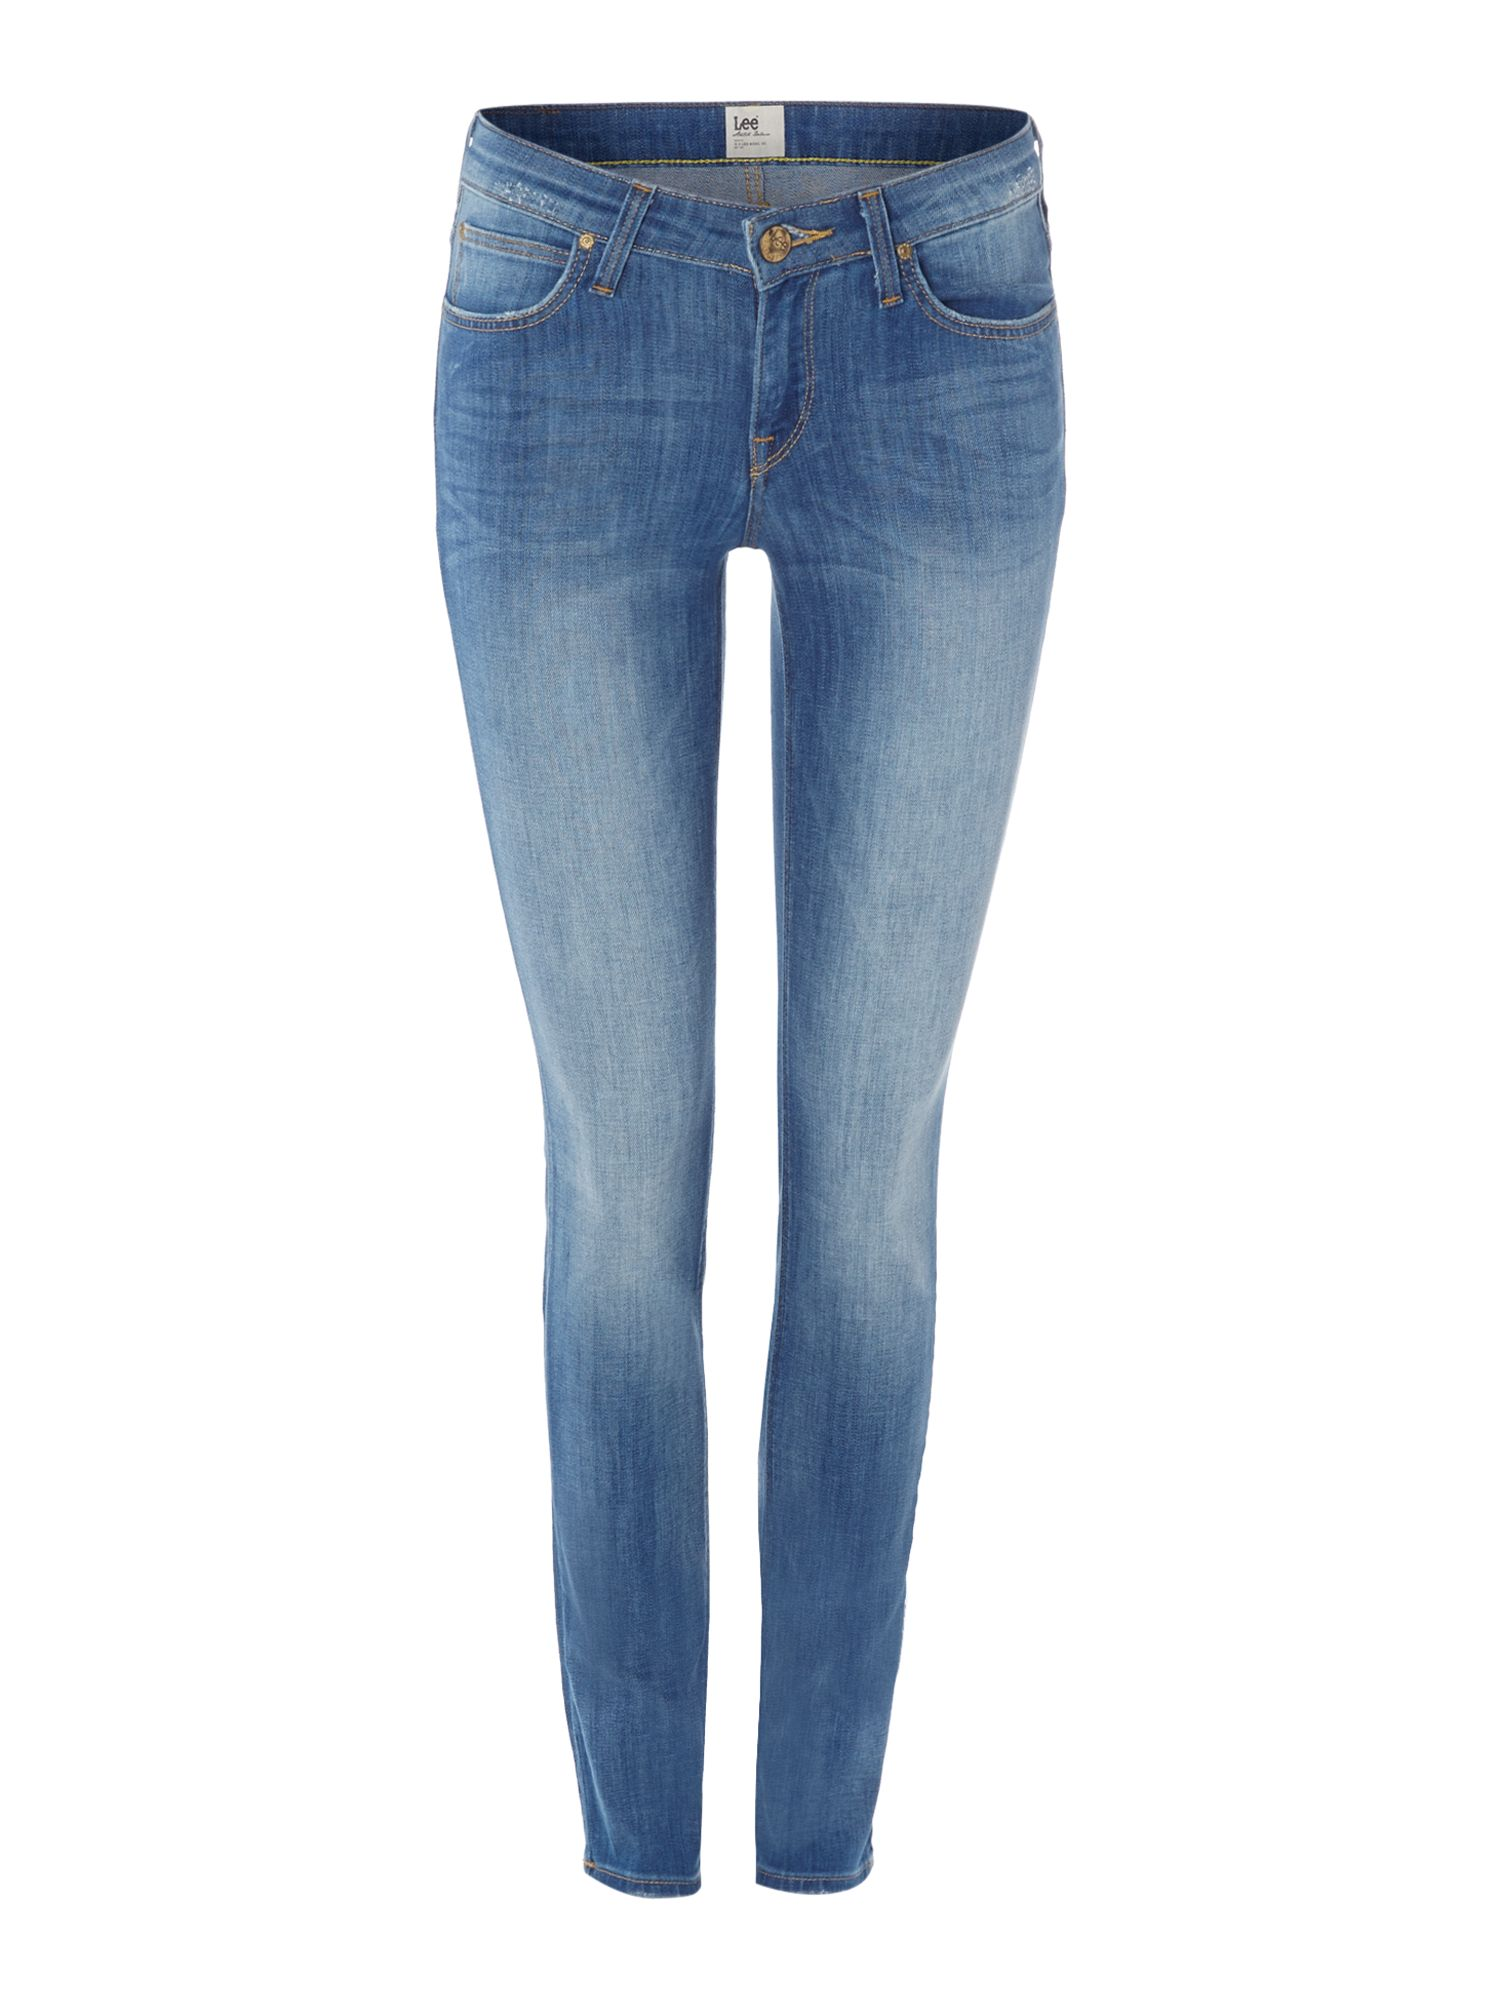 Scarlett skinny jean in crushed blue